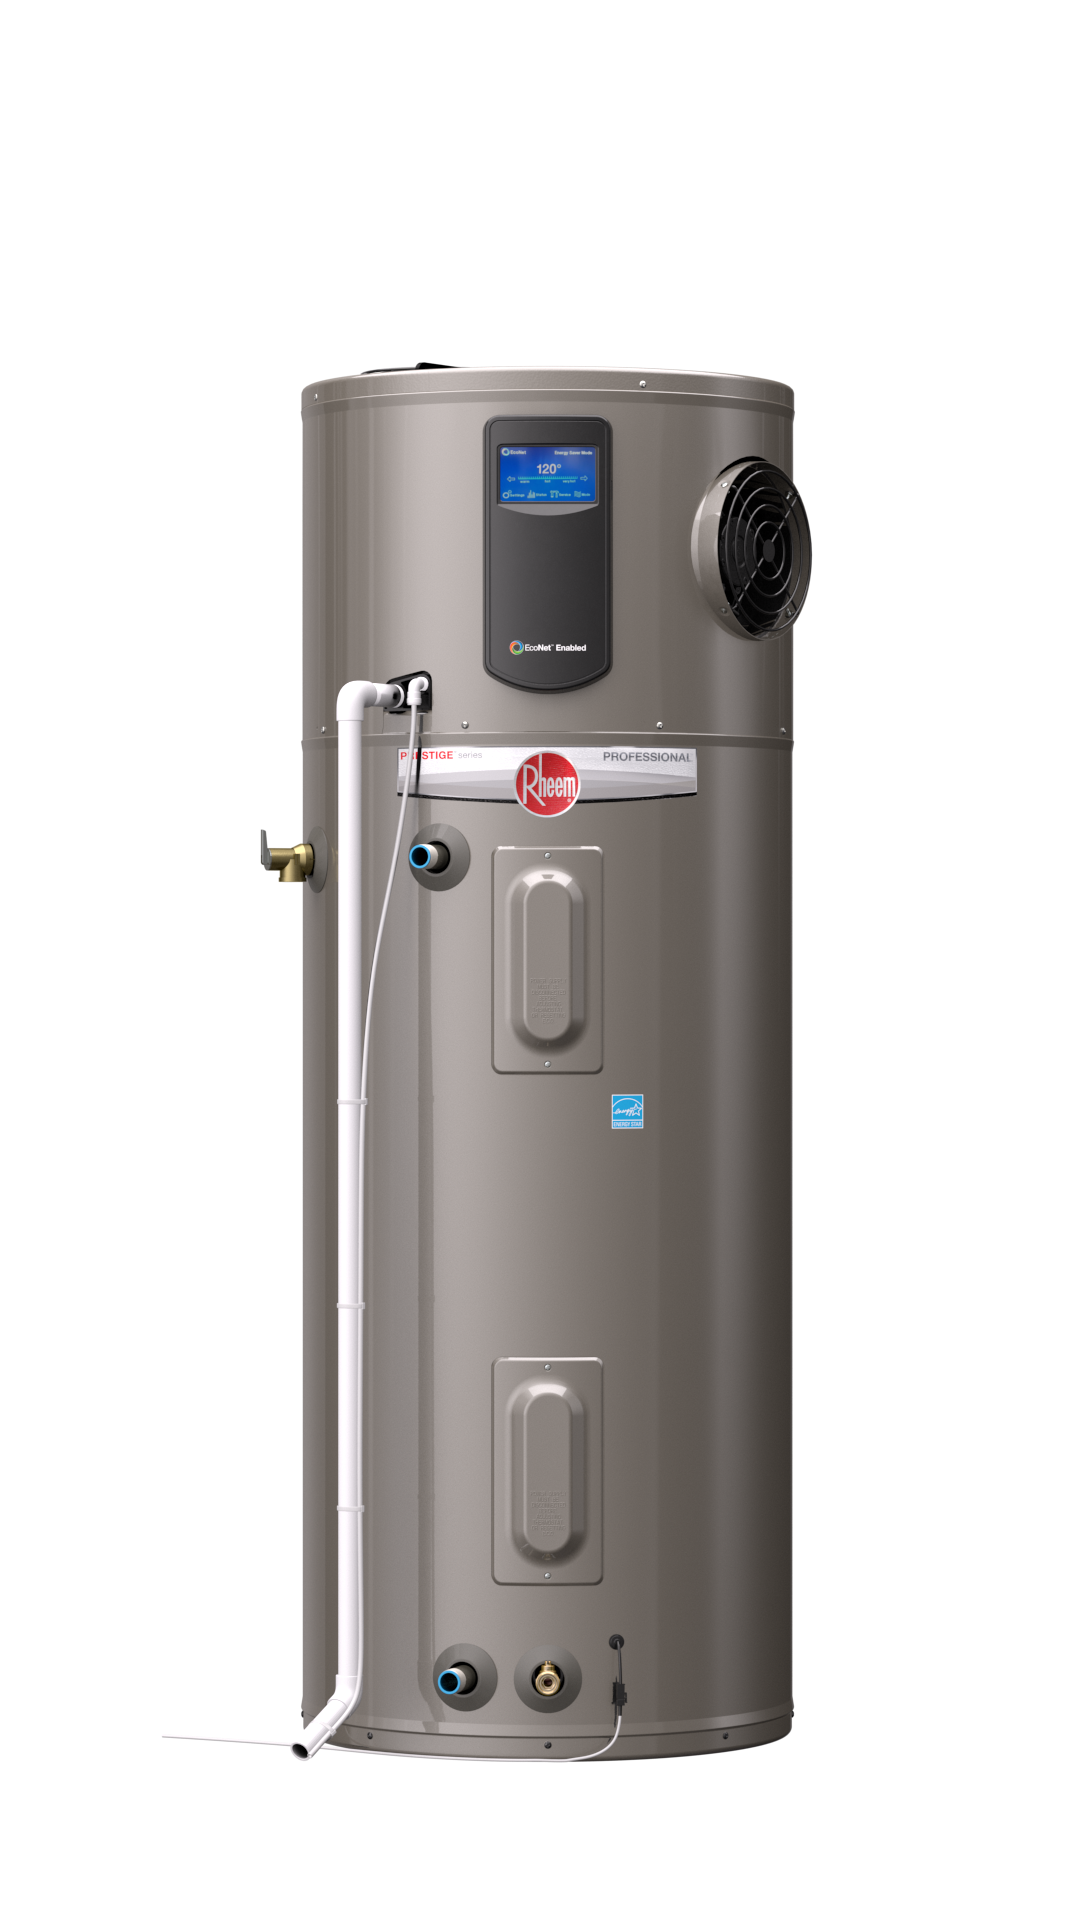 New Hot Water Heater From Rheem Reduces Energy Use By 73